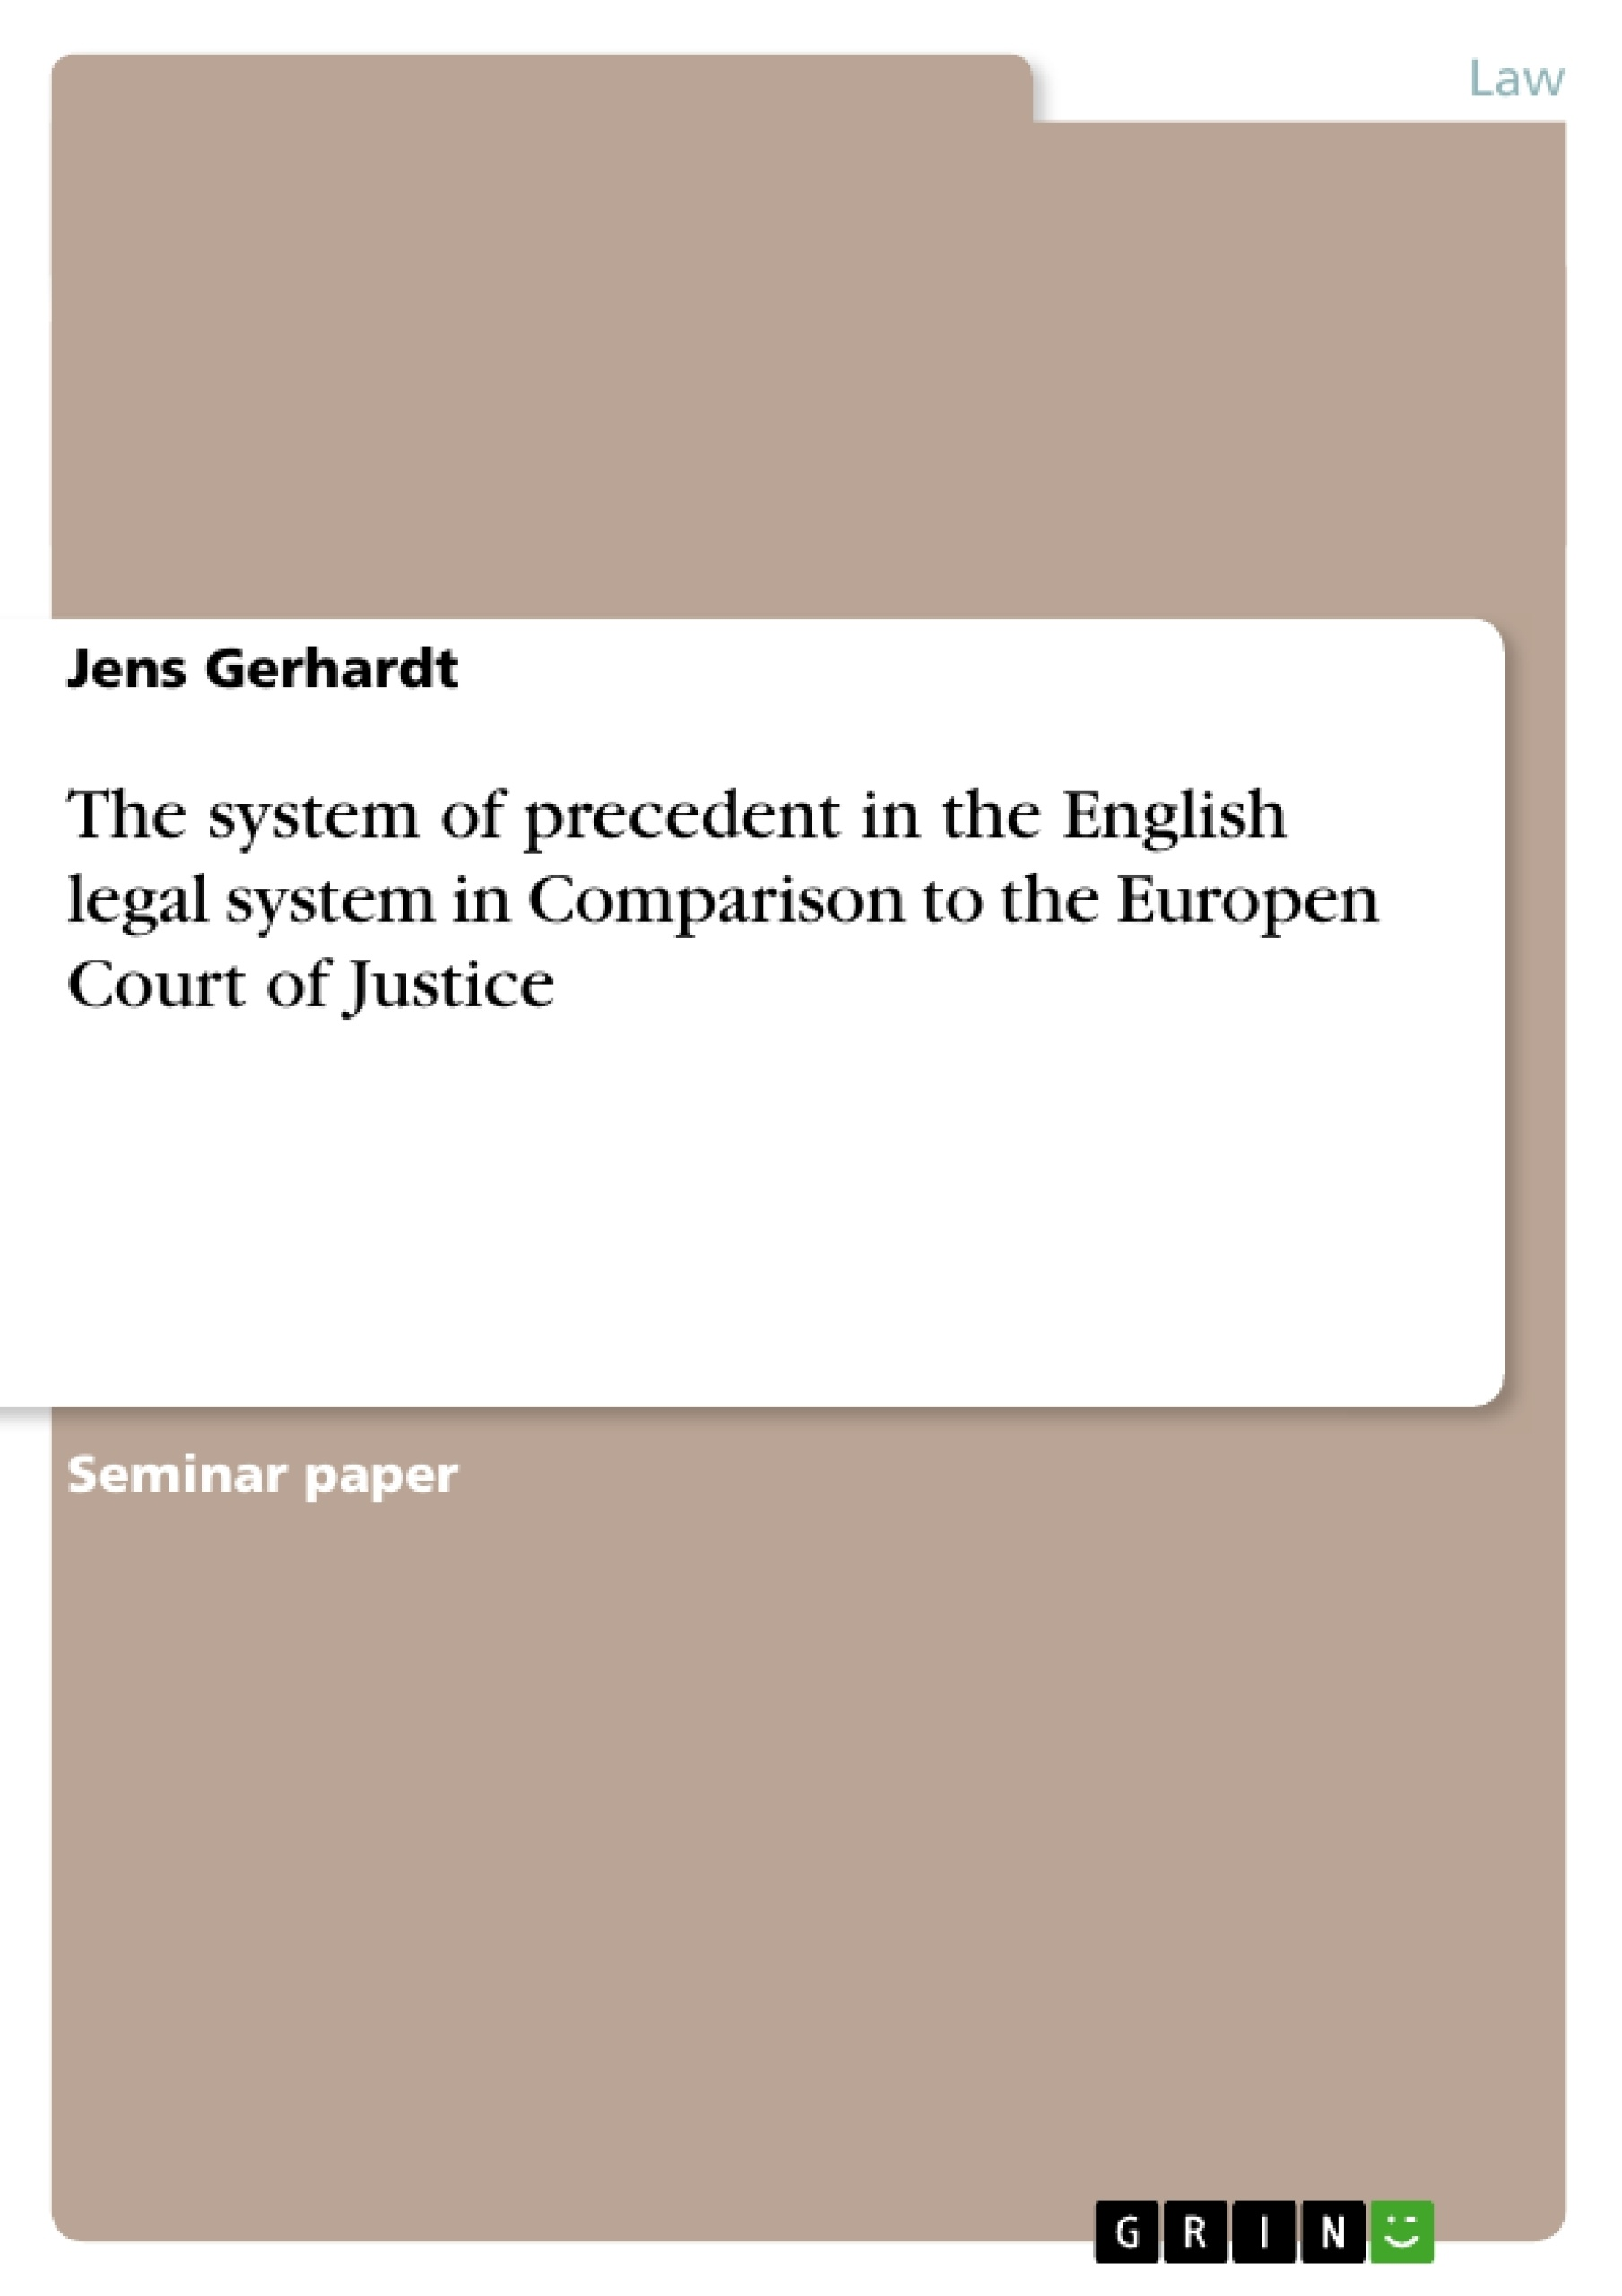 Title: The system of precedent in the English legal system in Comparison to the Europen Court of Justice